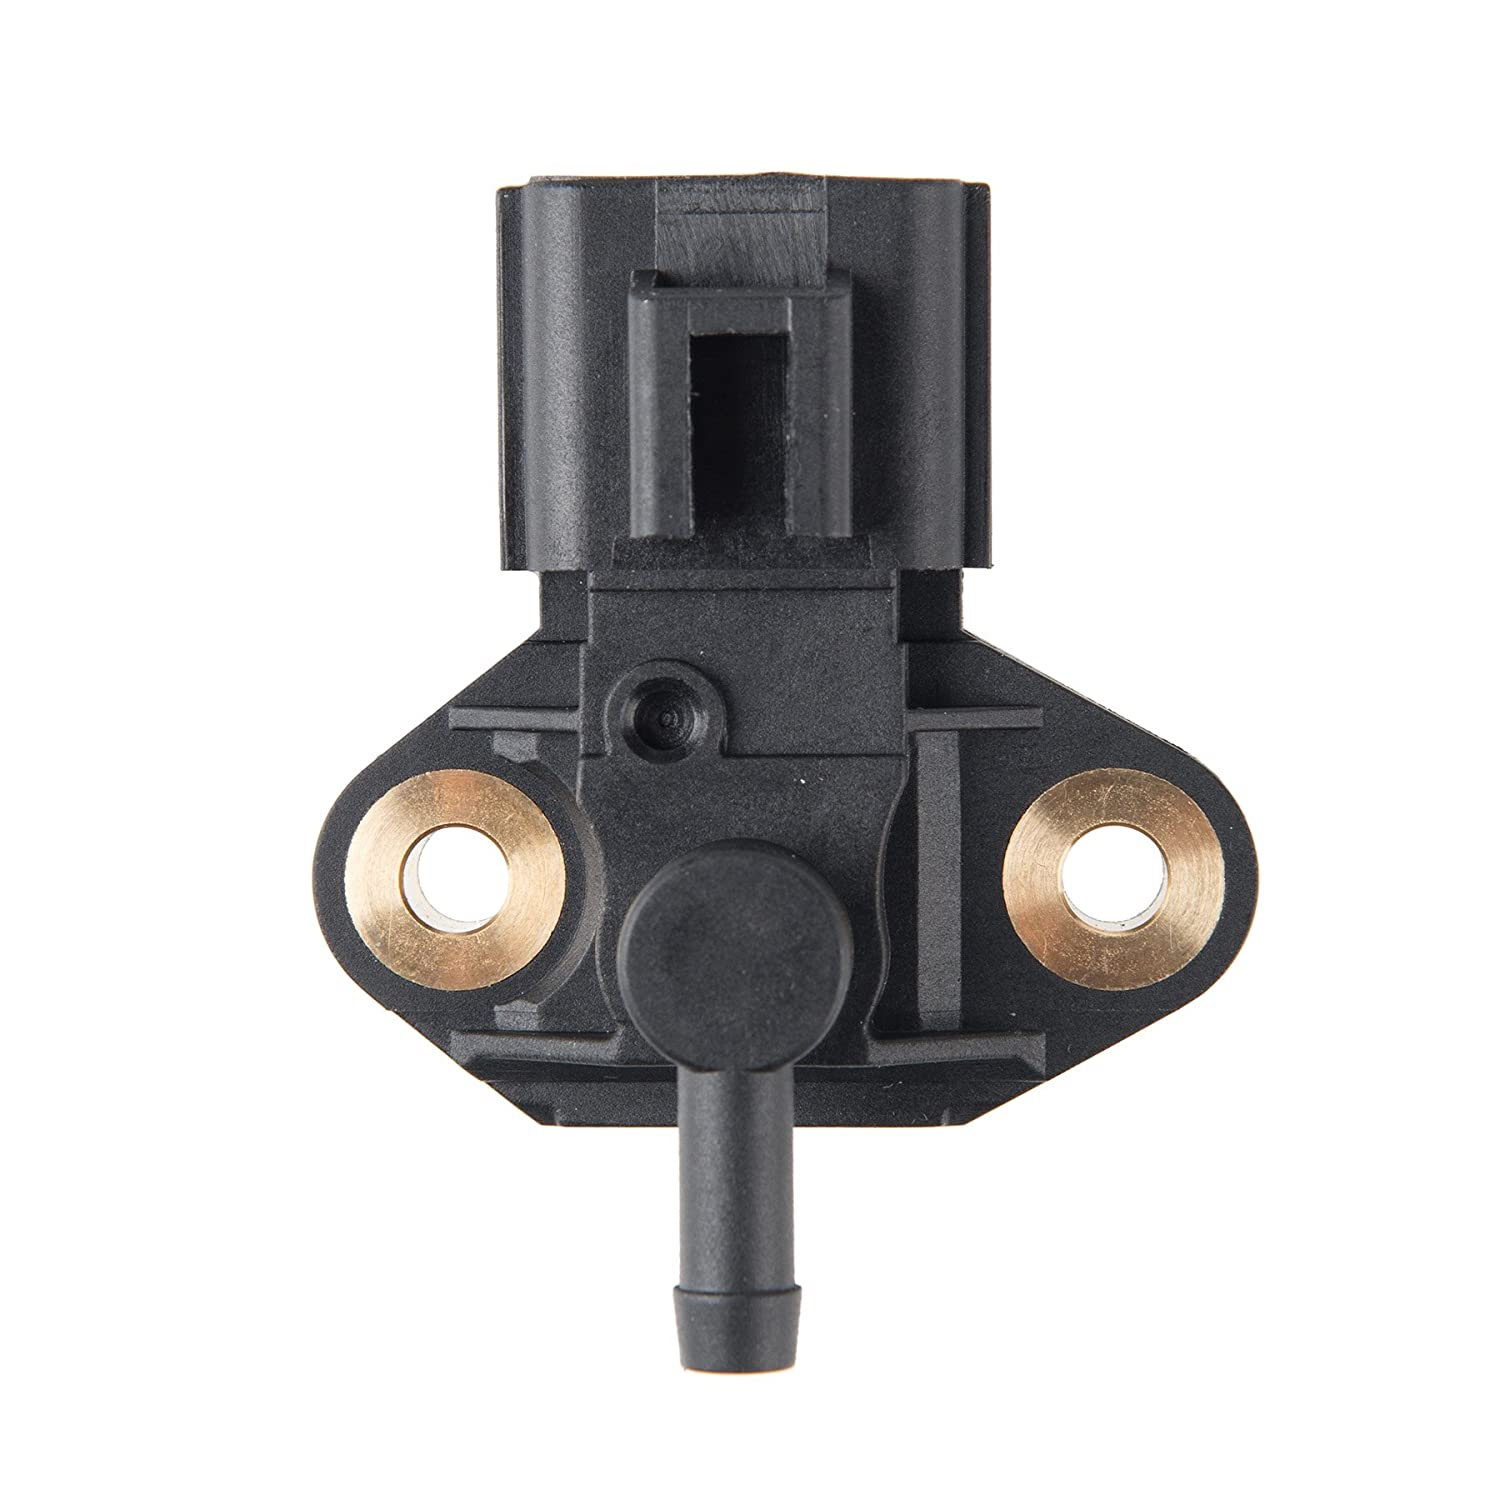 Ford Fuel Injection Pressure Sensor for Ford F-150, F-250 Super Duty, Focus, Explorer, Escape, Mustang, E-series, Lincoln, Mercury & More, Replace 3F2Z9-G756-AC Orion Motor Tech